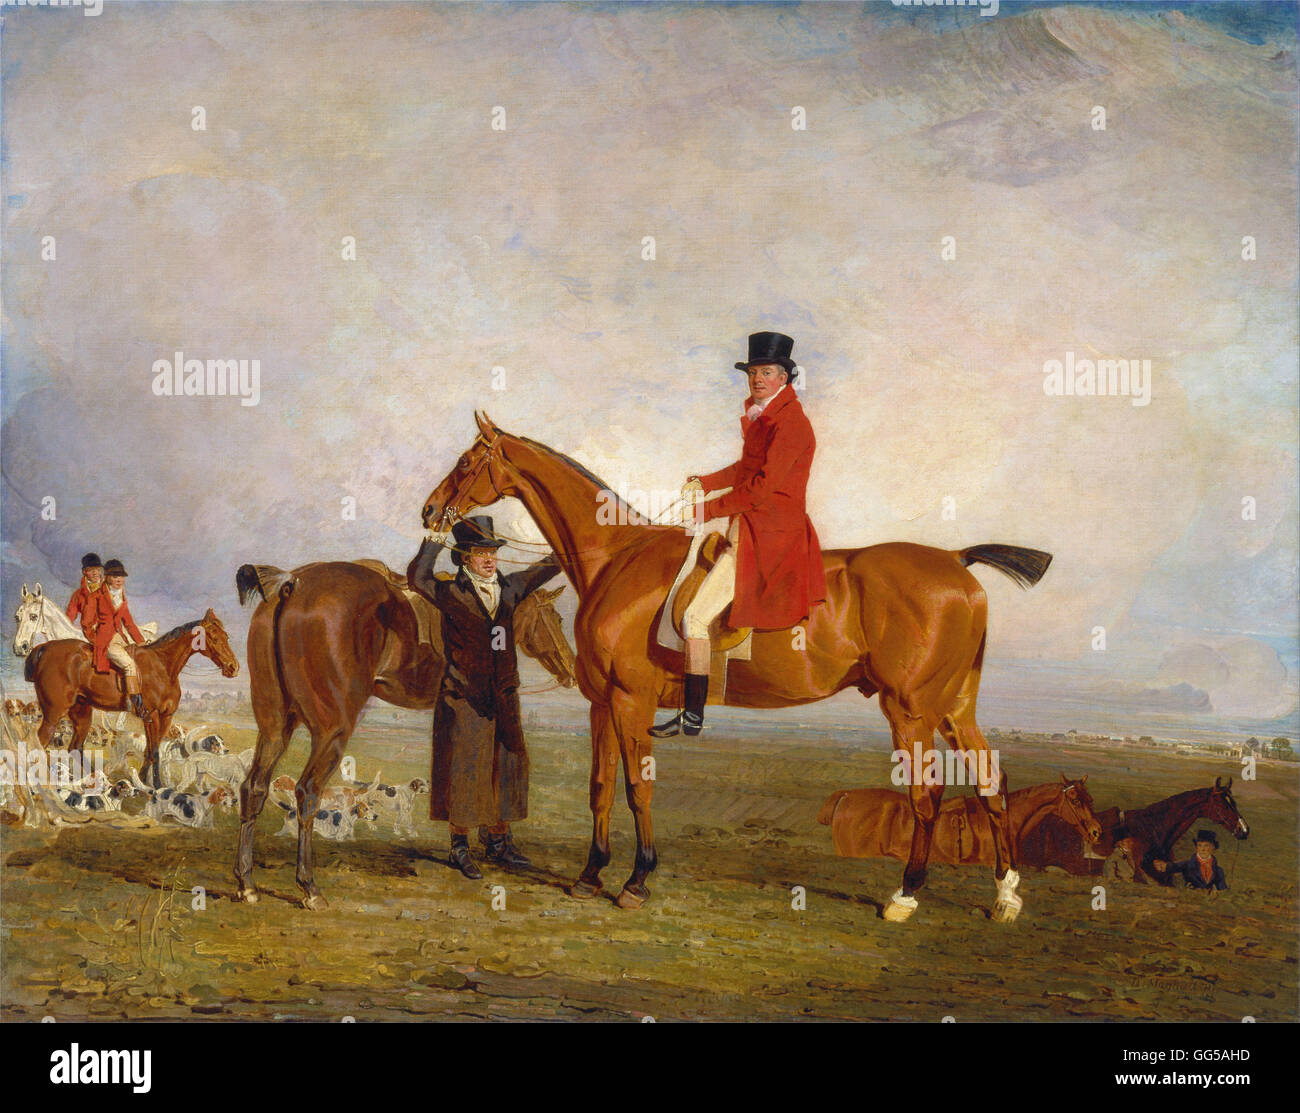 Benjamin Marshall - George, Marquess of Huntly (later 5th Duke of Gordon), on Tiny - Stock Image